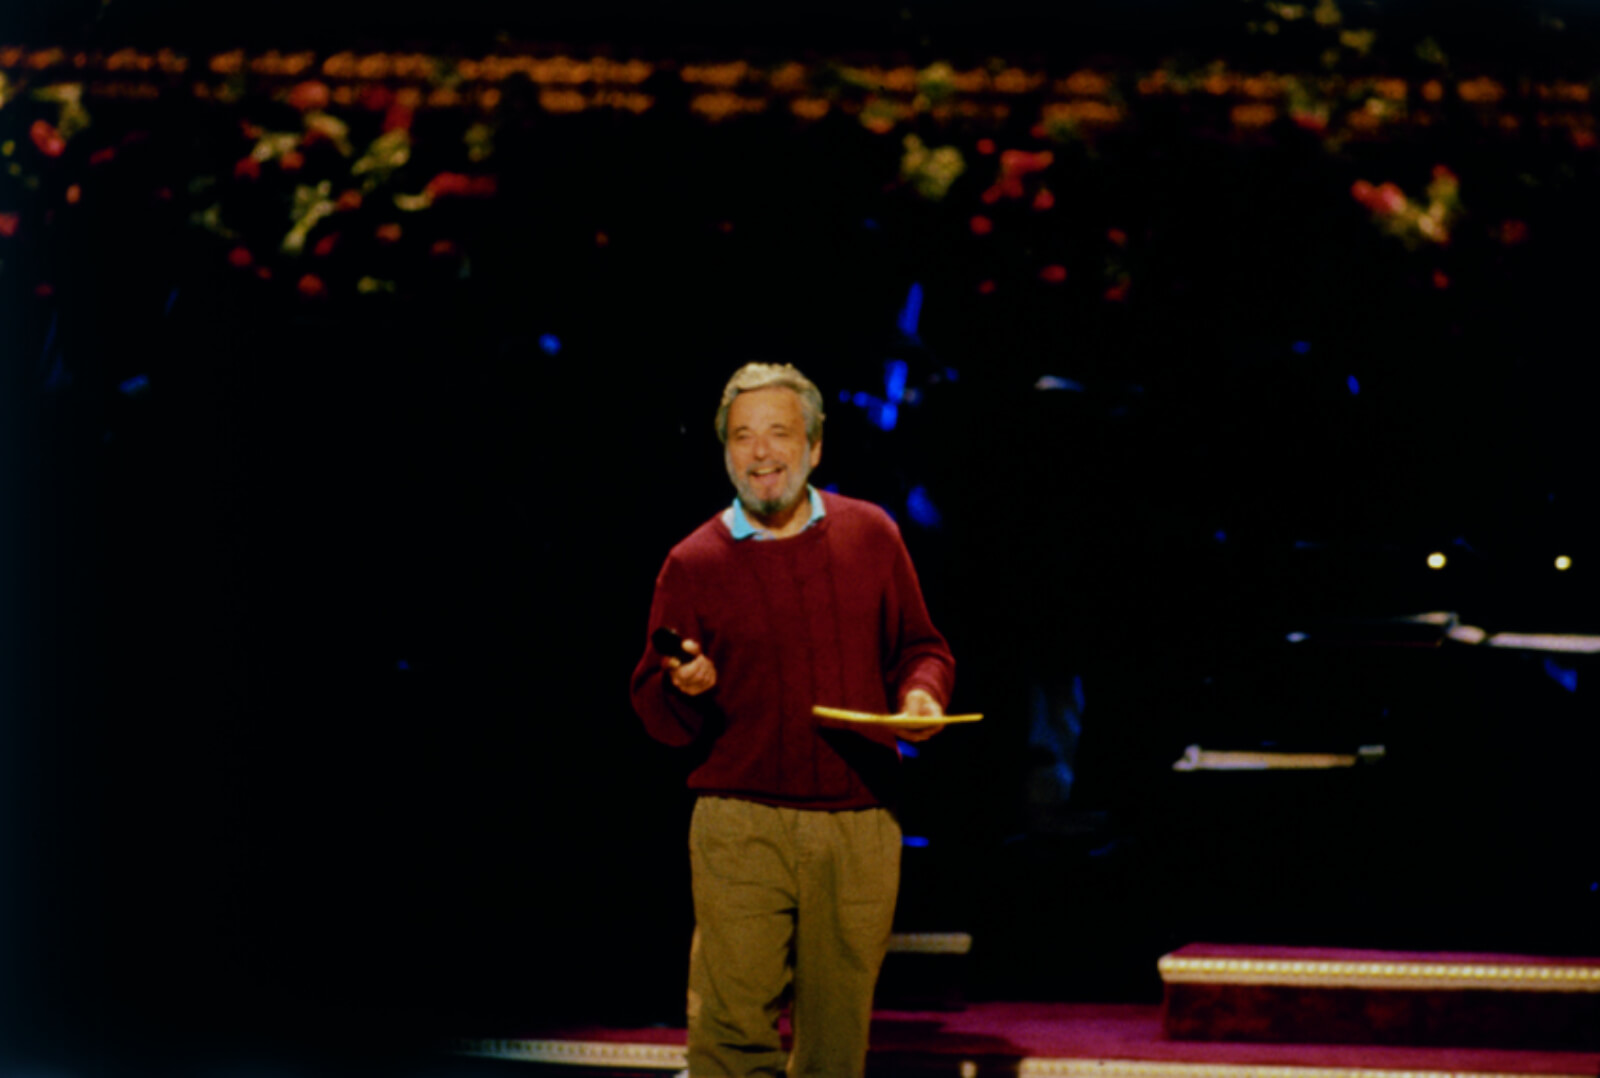 Stephen Sondheim in rehearsal. He is wearing a blue dress shirt and a maroon sweater, holding a microphone and notepad.